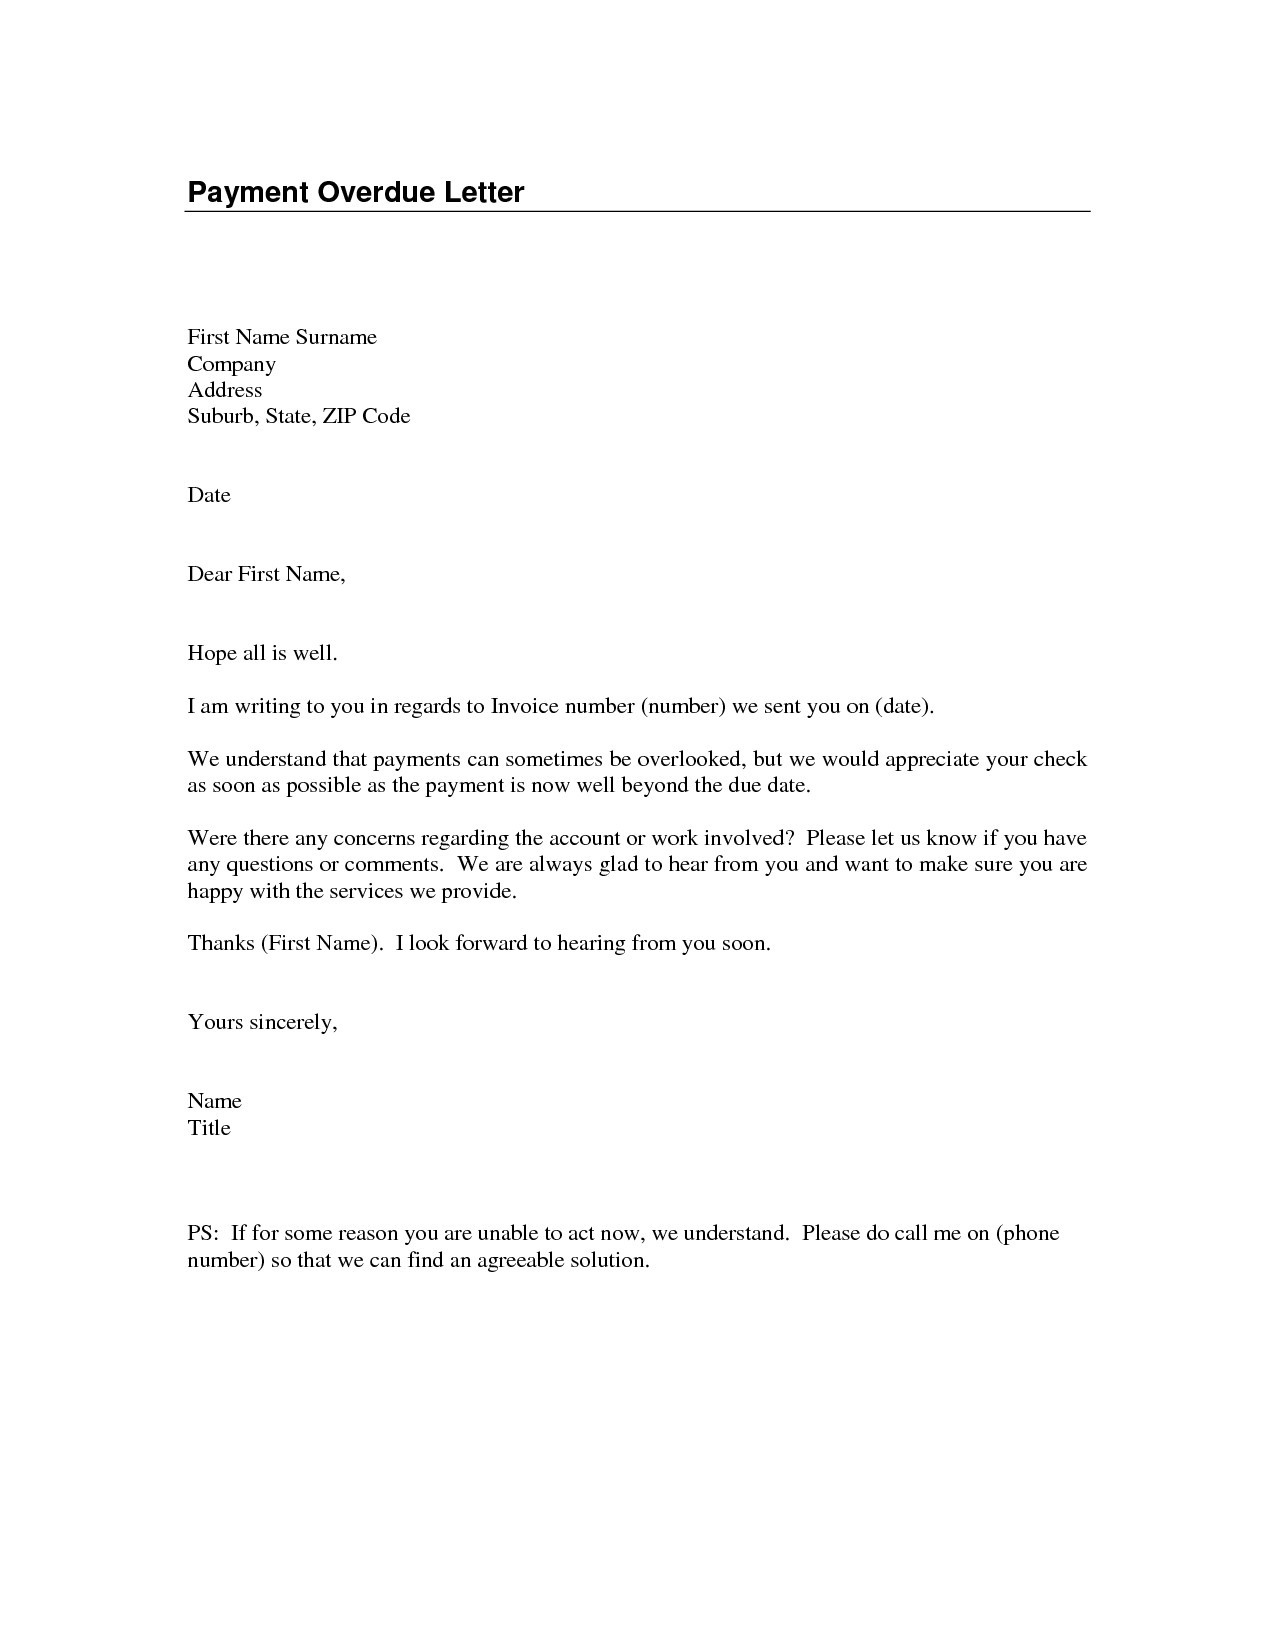 Outstanding Payment Letter Template - Legal Letter format Template Best Legal Letter format for